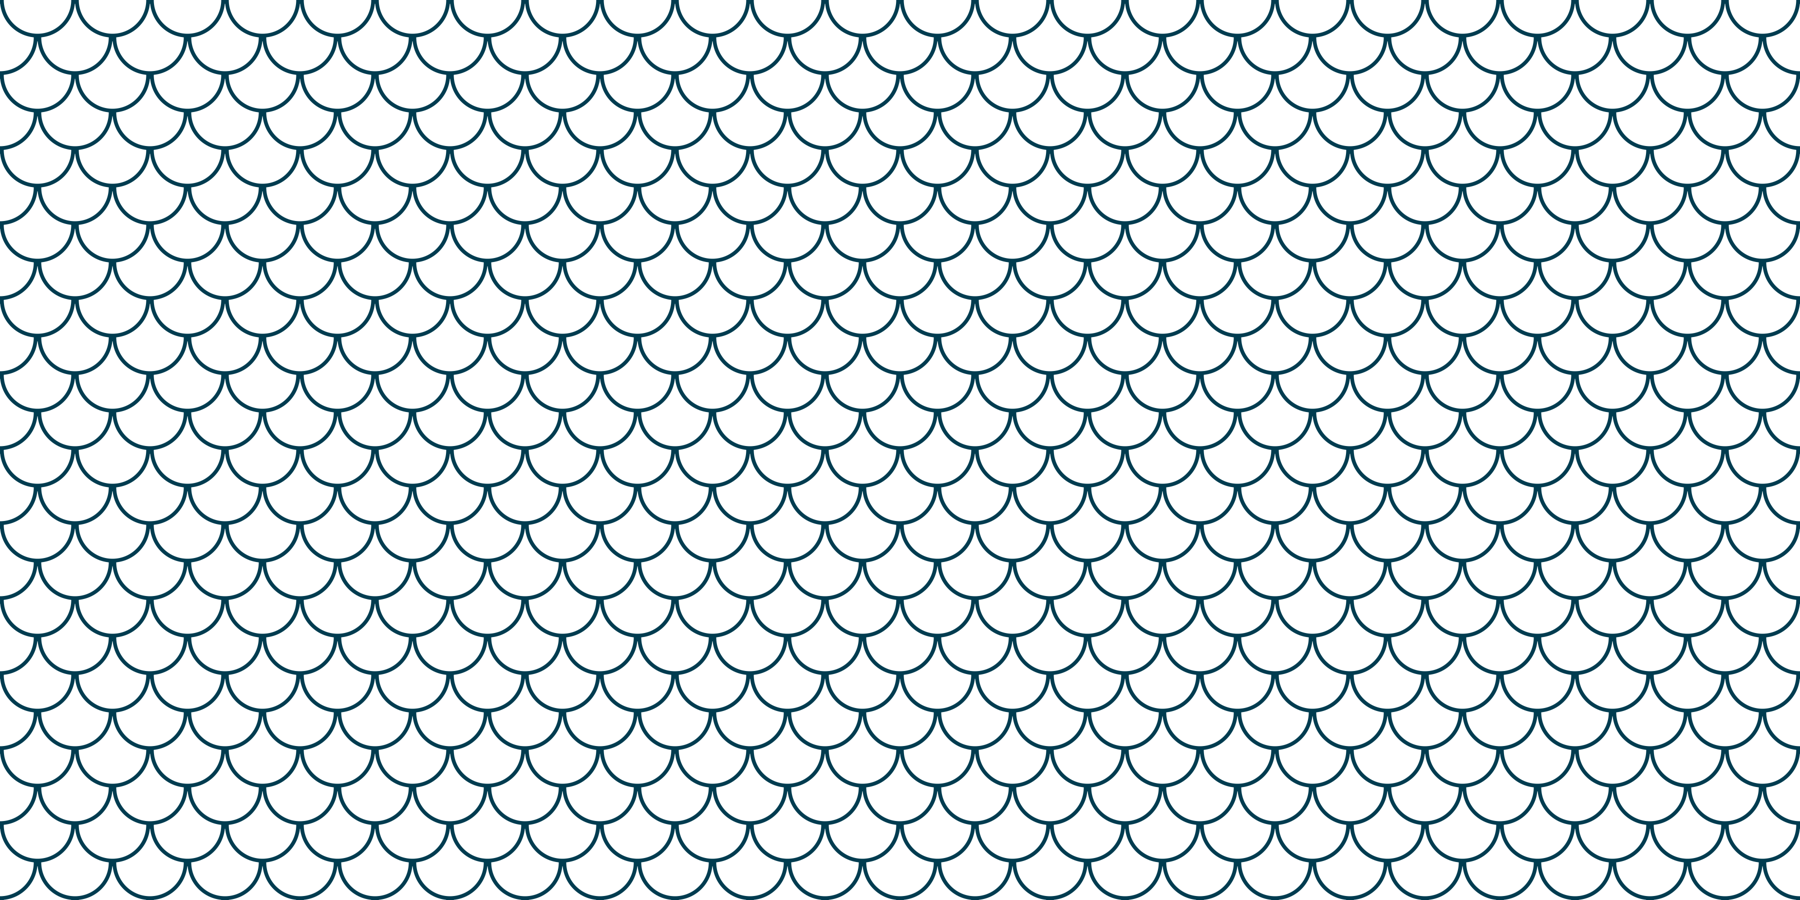 fish scale png scales navy wallpaper amybethunephotography